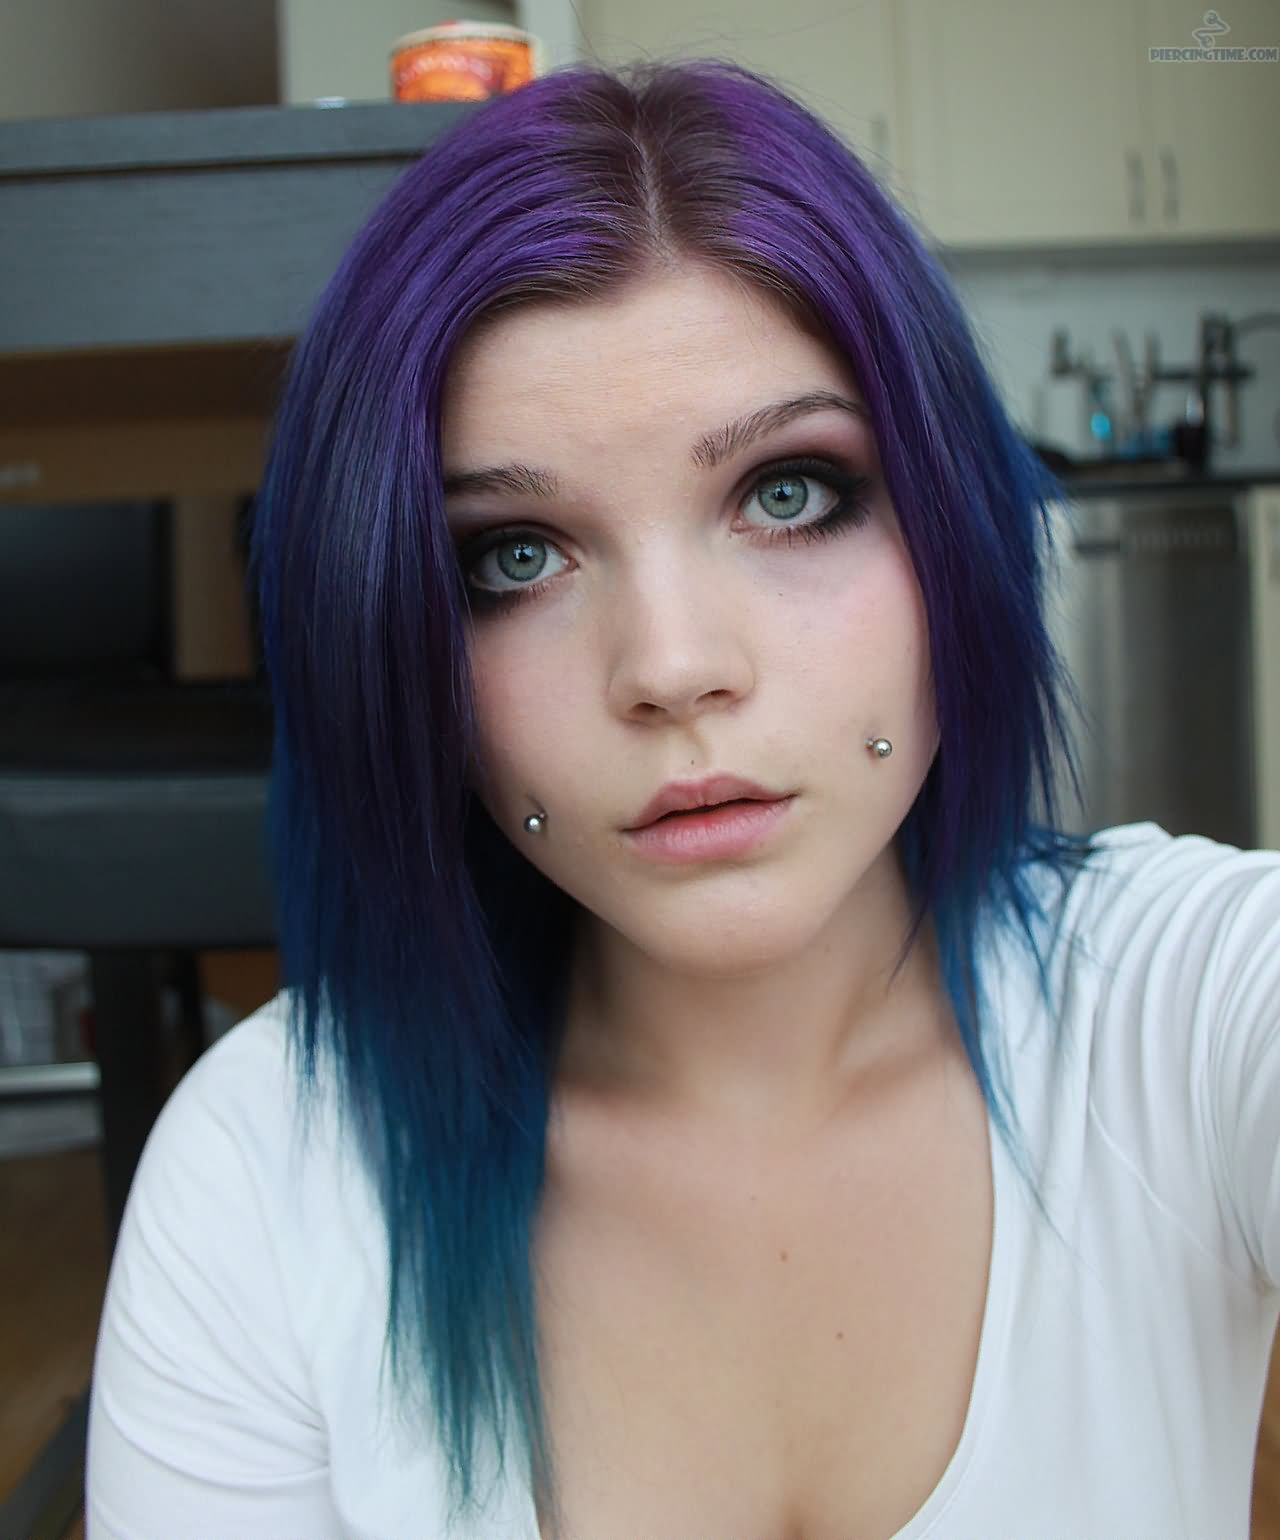 Cool Cheek Piercing For Young Girls